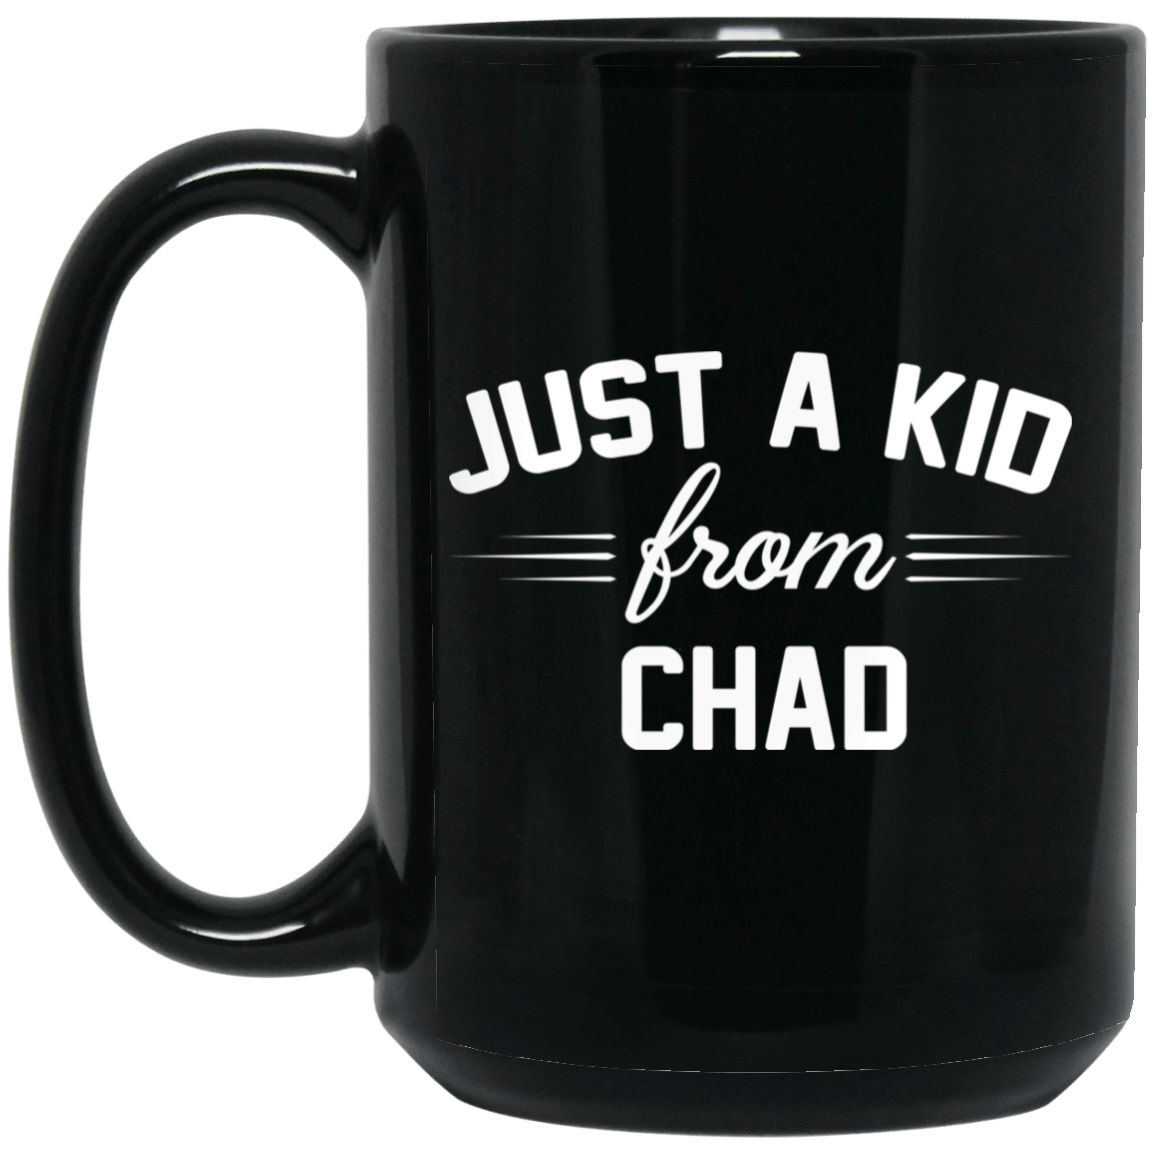 Just A Kid Store | Chad Mug 1066-10182-72111284-49311 - Tee Ript